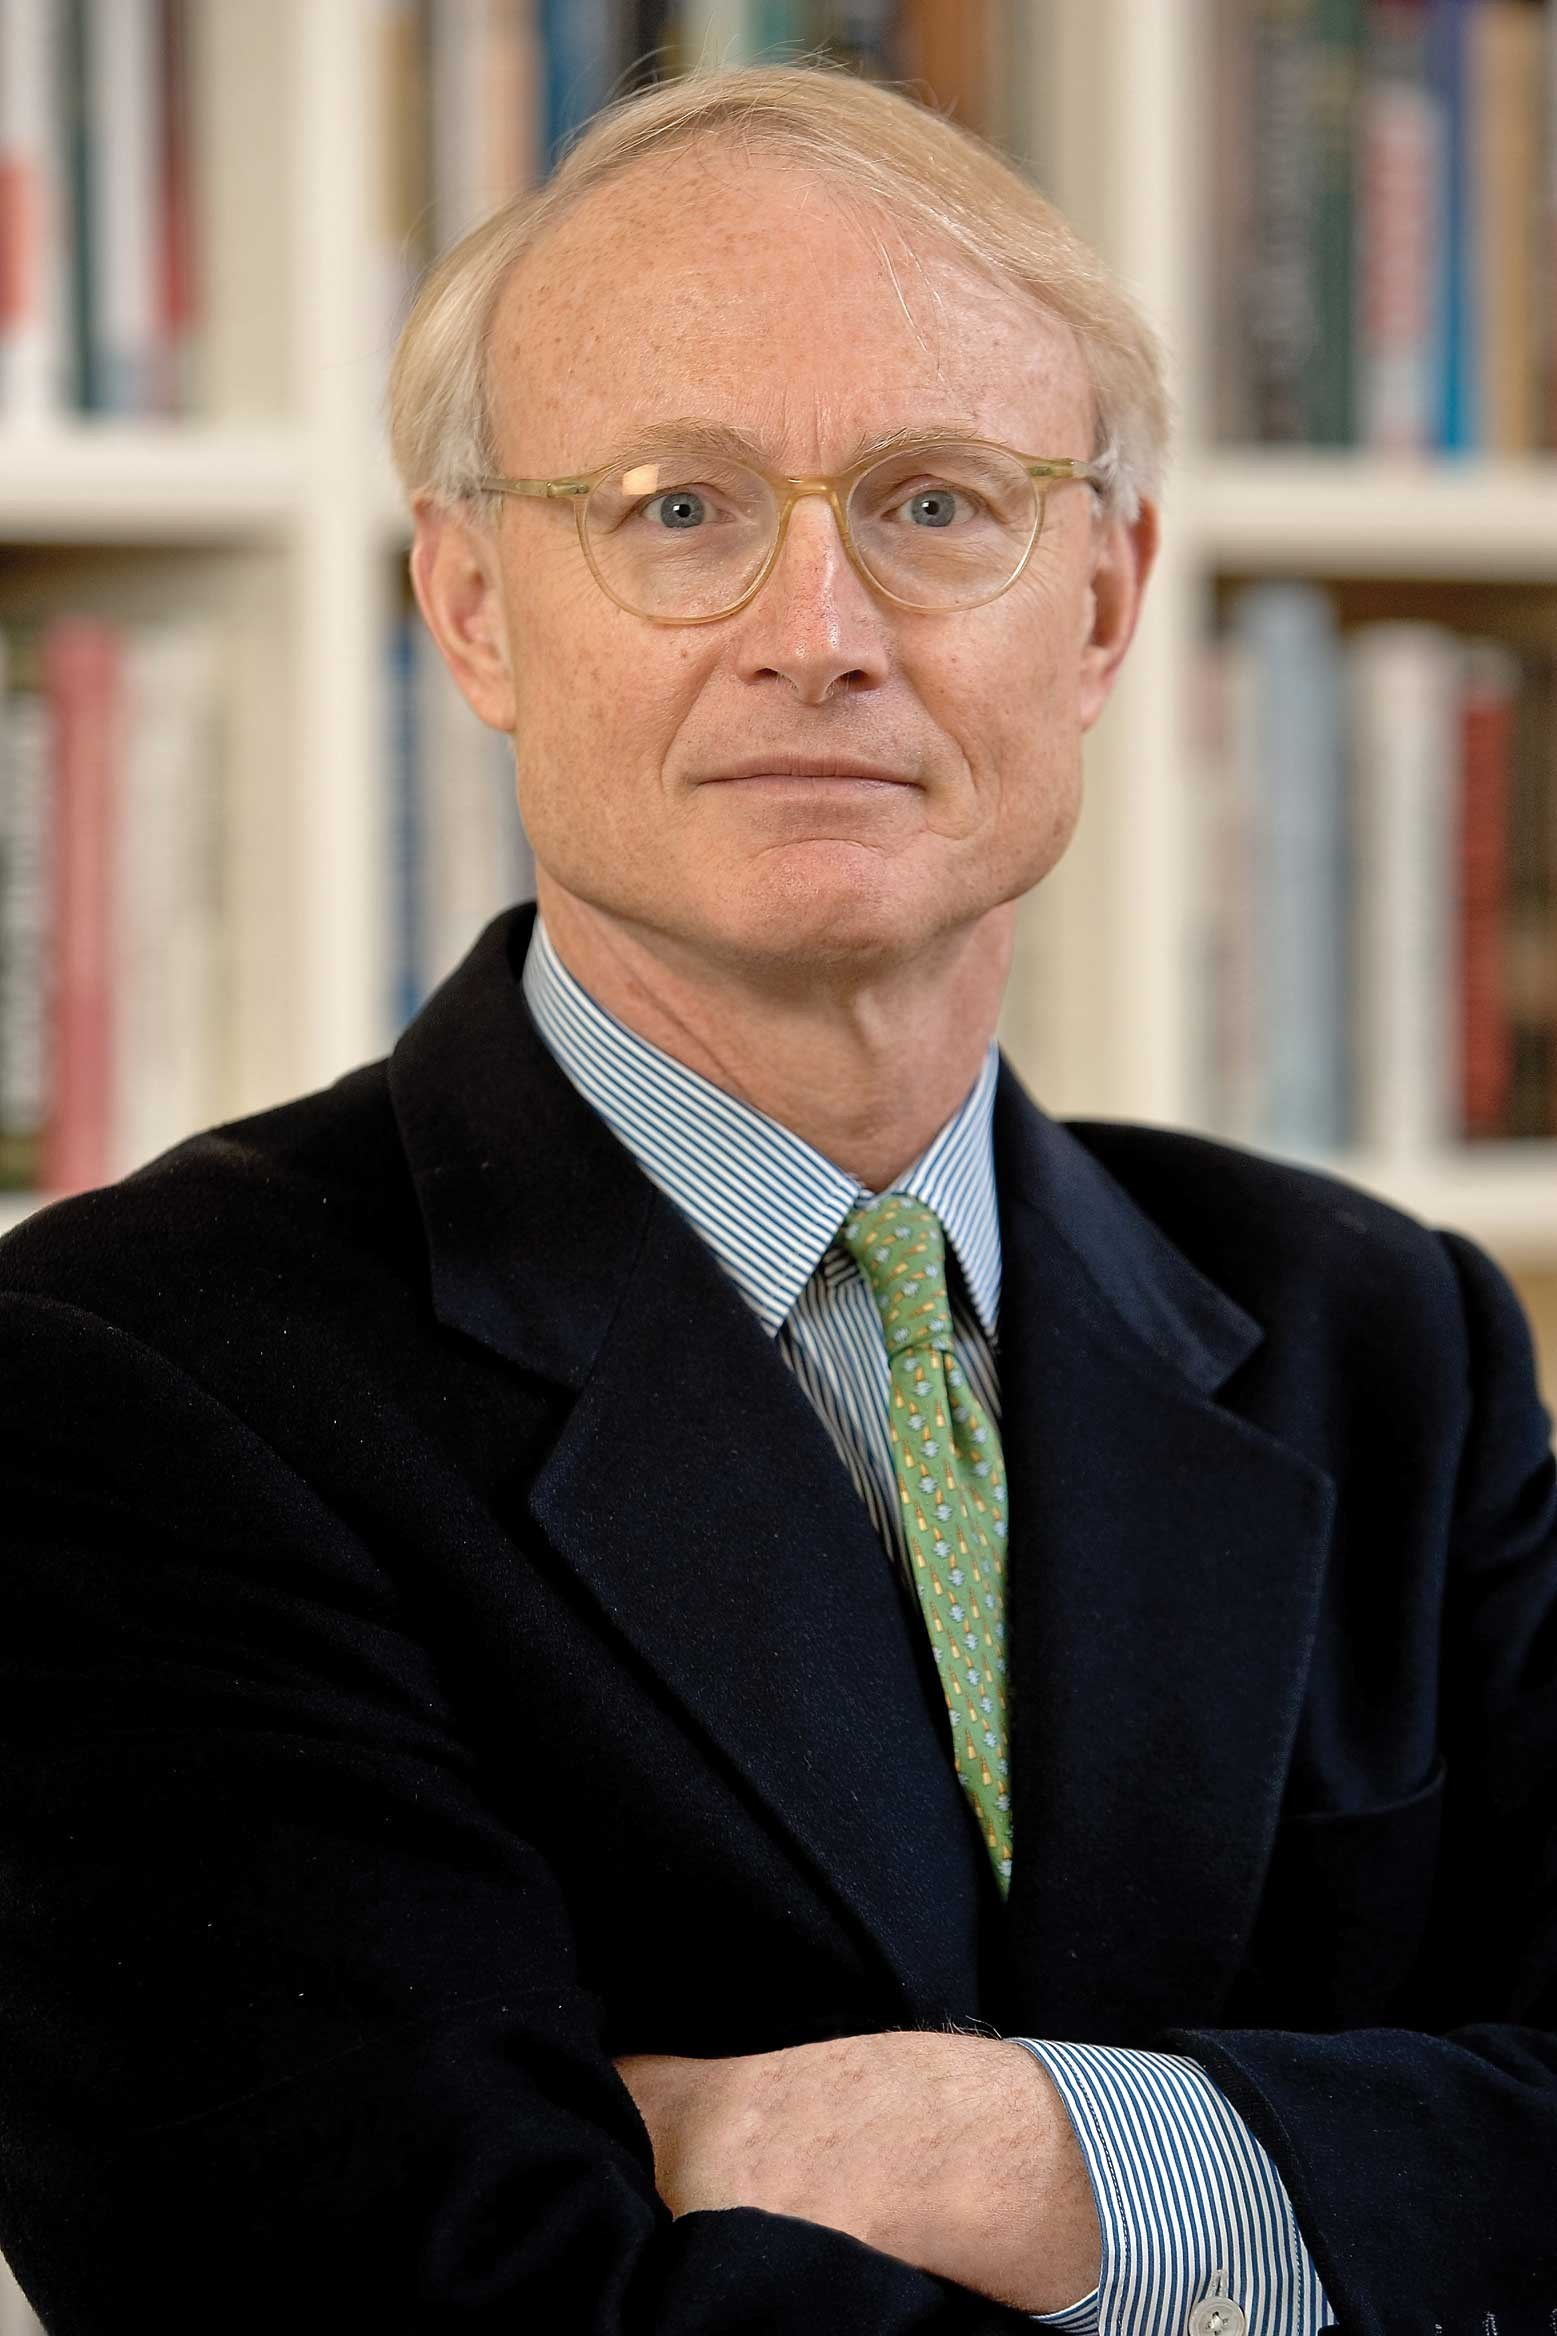 Michael Porter Libros Michael Porter Known People Famous People News And